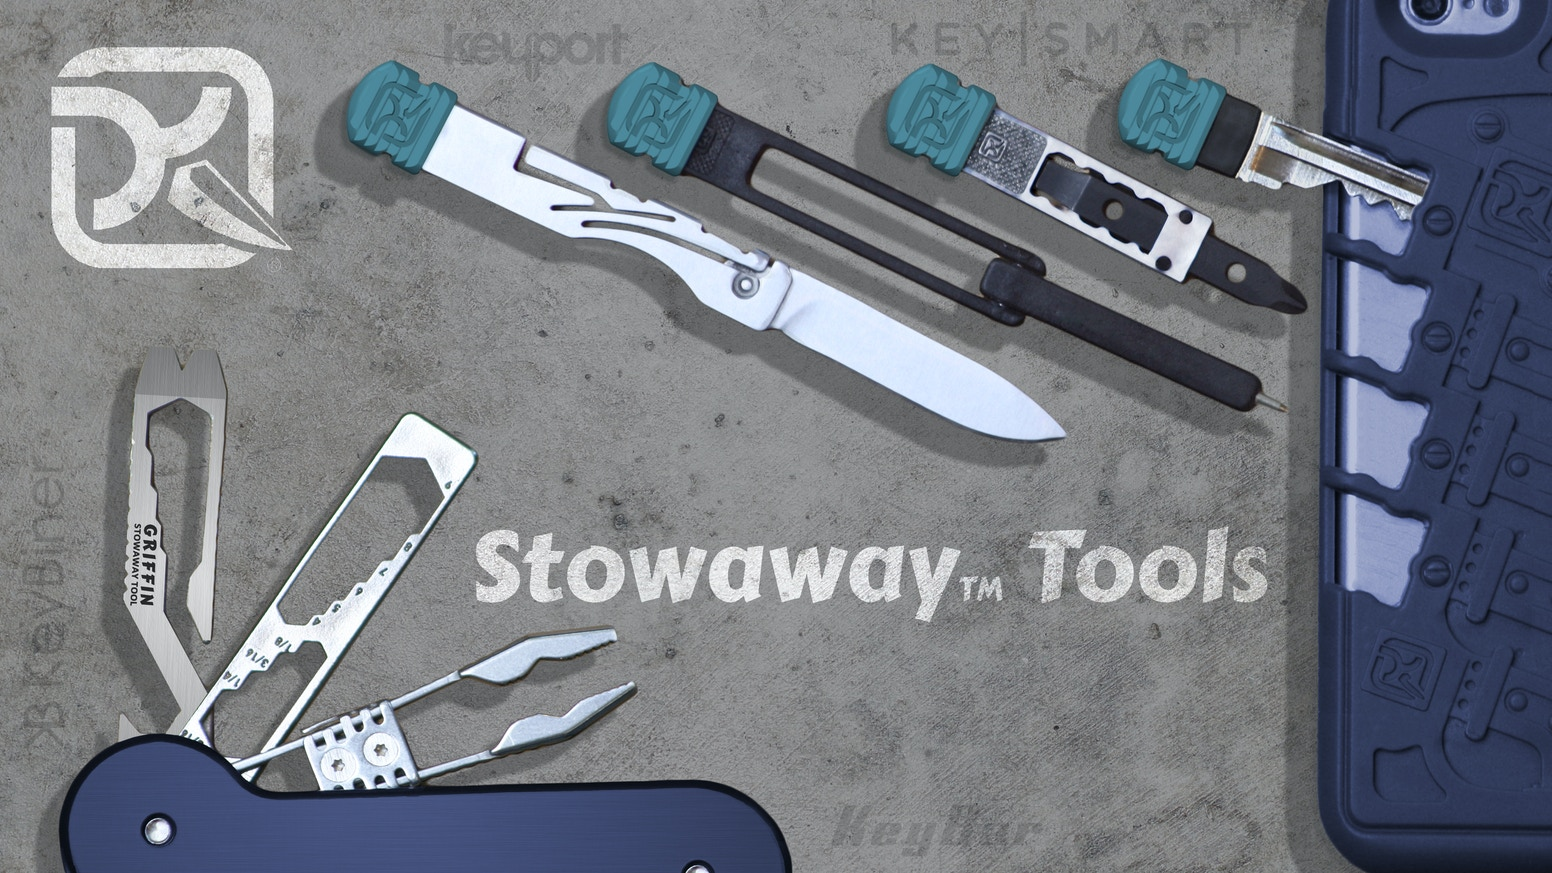 Stowaway Tools: The first tool line that tuck into every way that you EDC (Everyday Carry), Phone, Keys, KeyBar, KeyPort, KeySmart, Orbitkey and more!